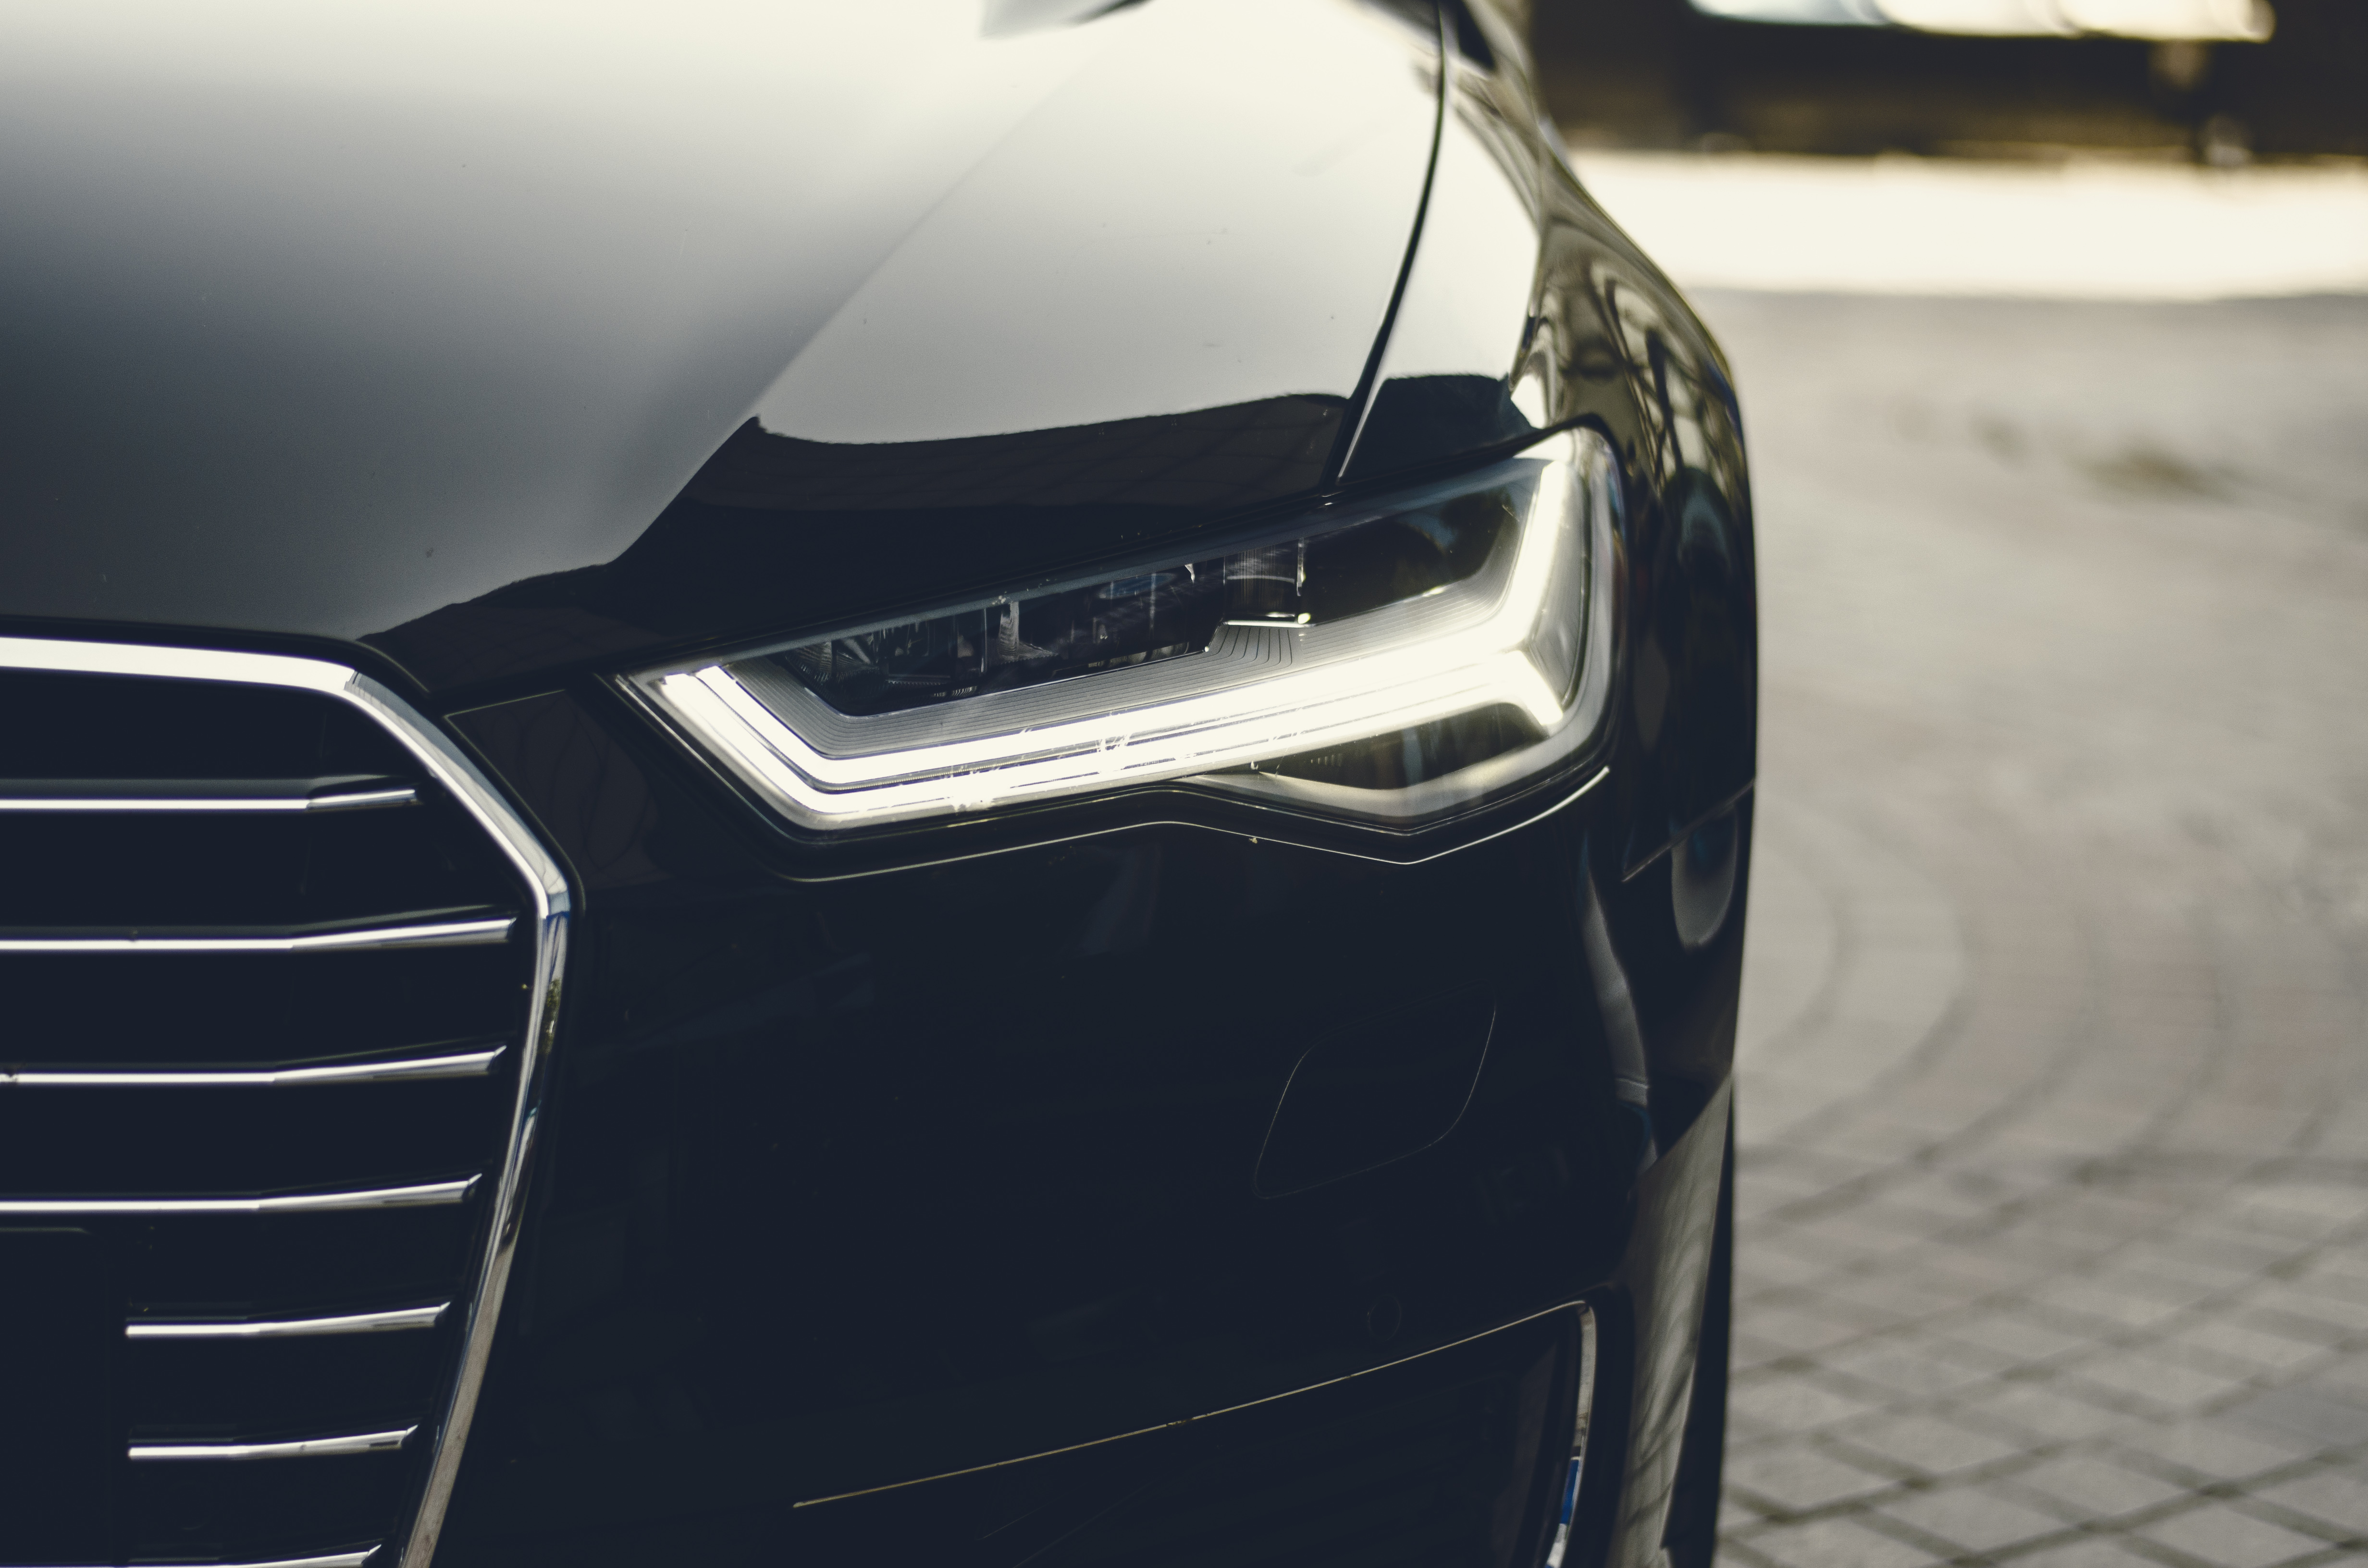 Quality Hand Carwash And Detail - Audi beverly hills car wash